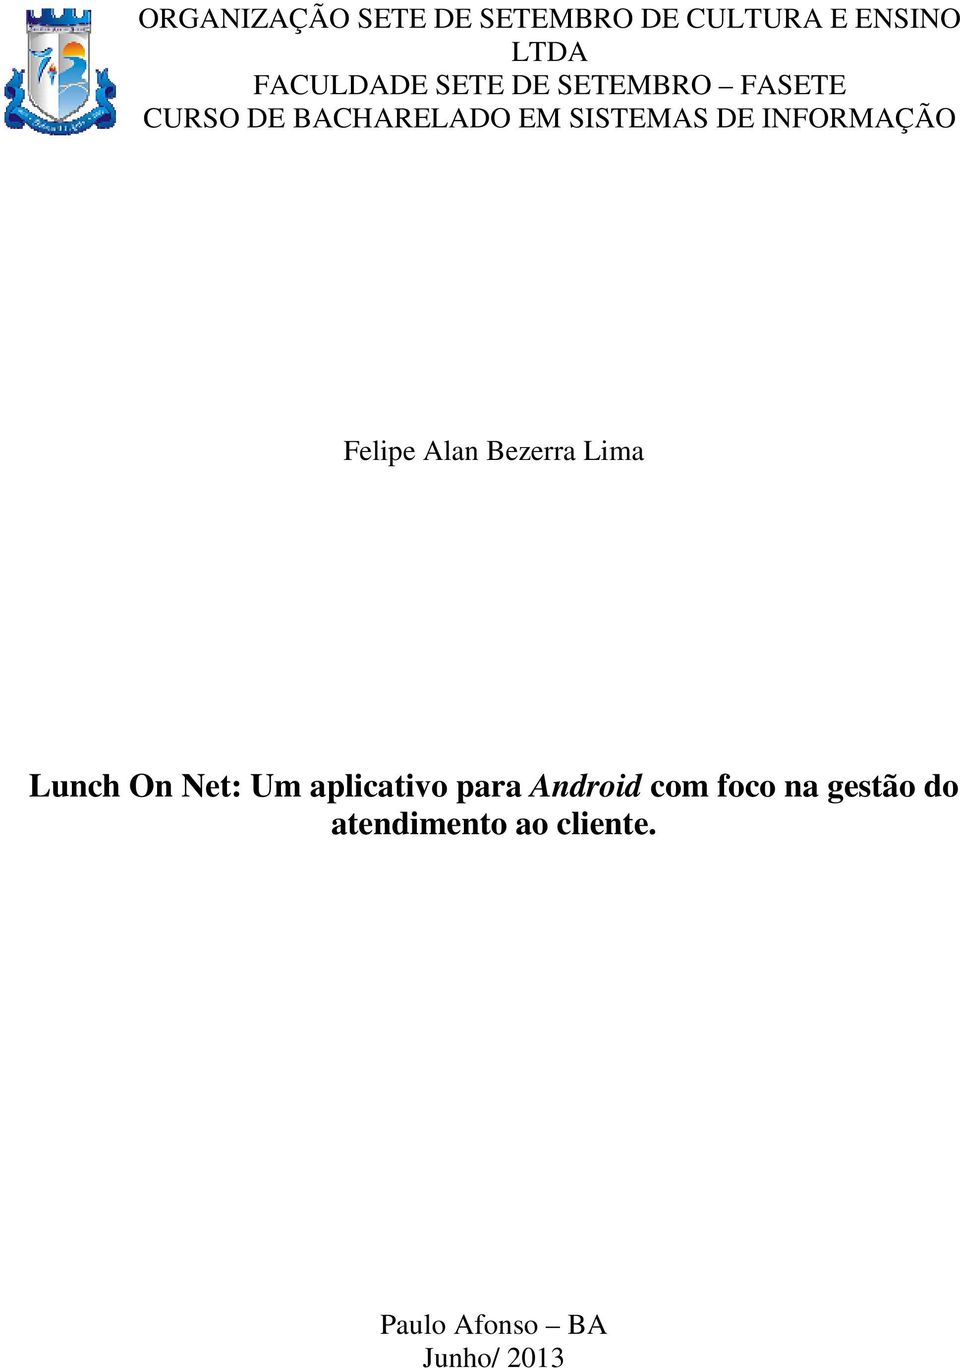 Felipe Alan Bezerra Lima Lunch On Net: Um aplicativo para Android